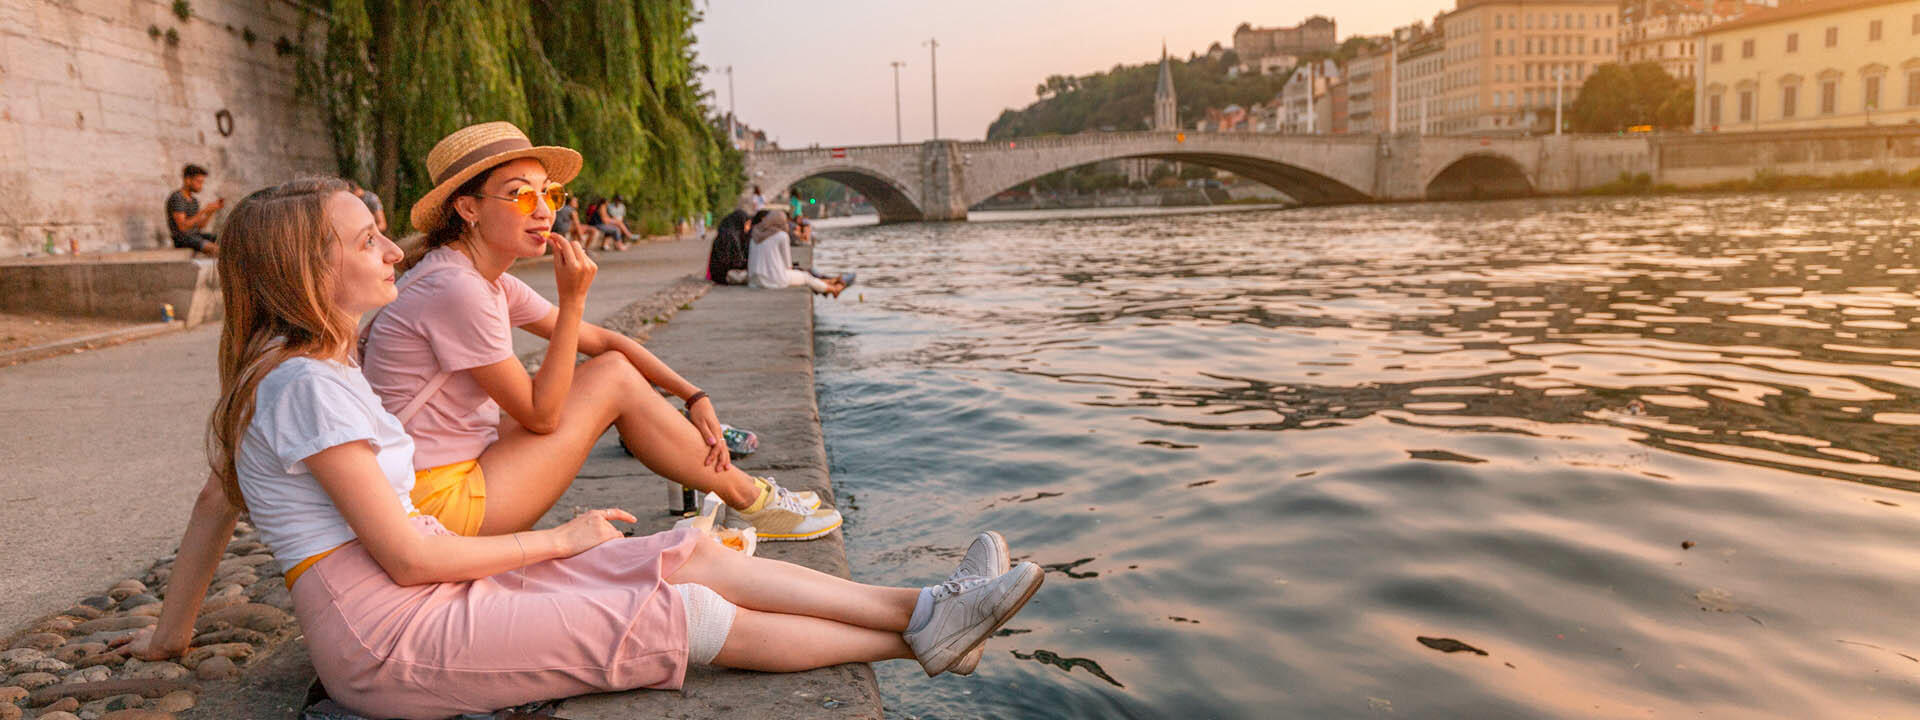 Make the most of your weekend in Lyon